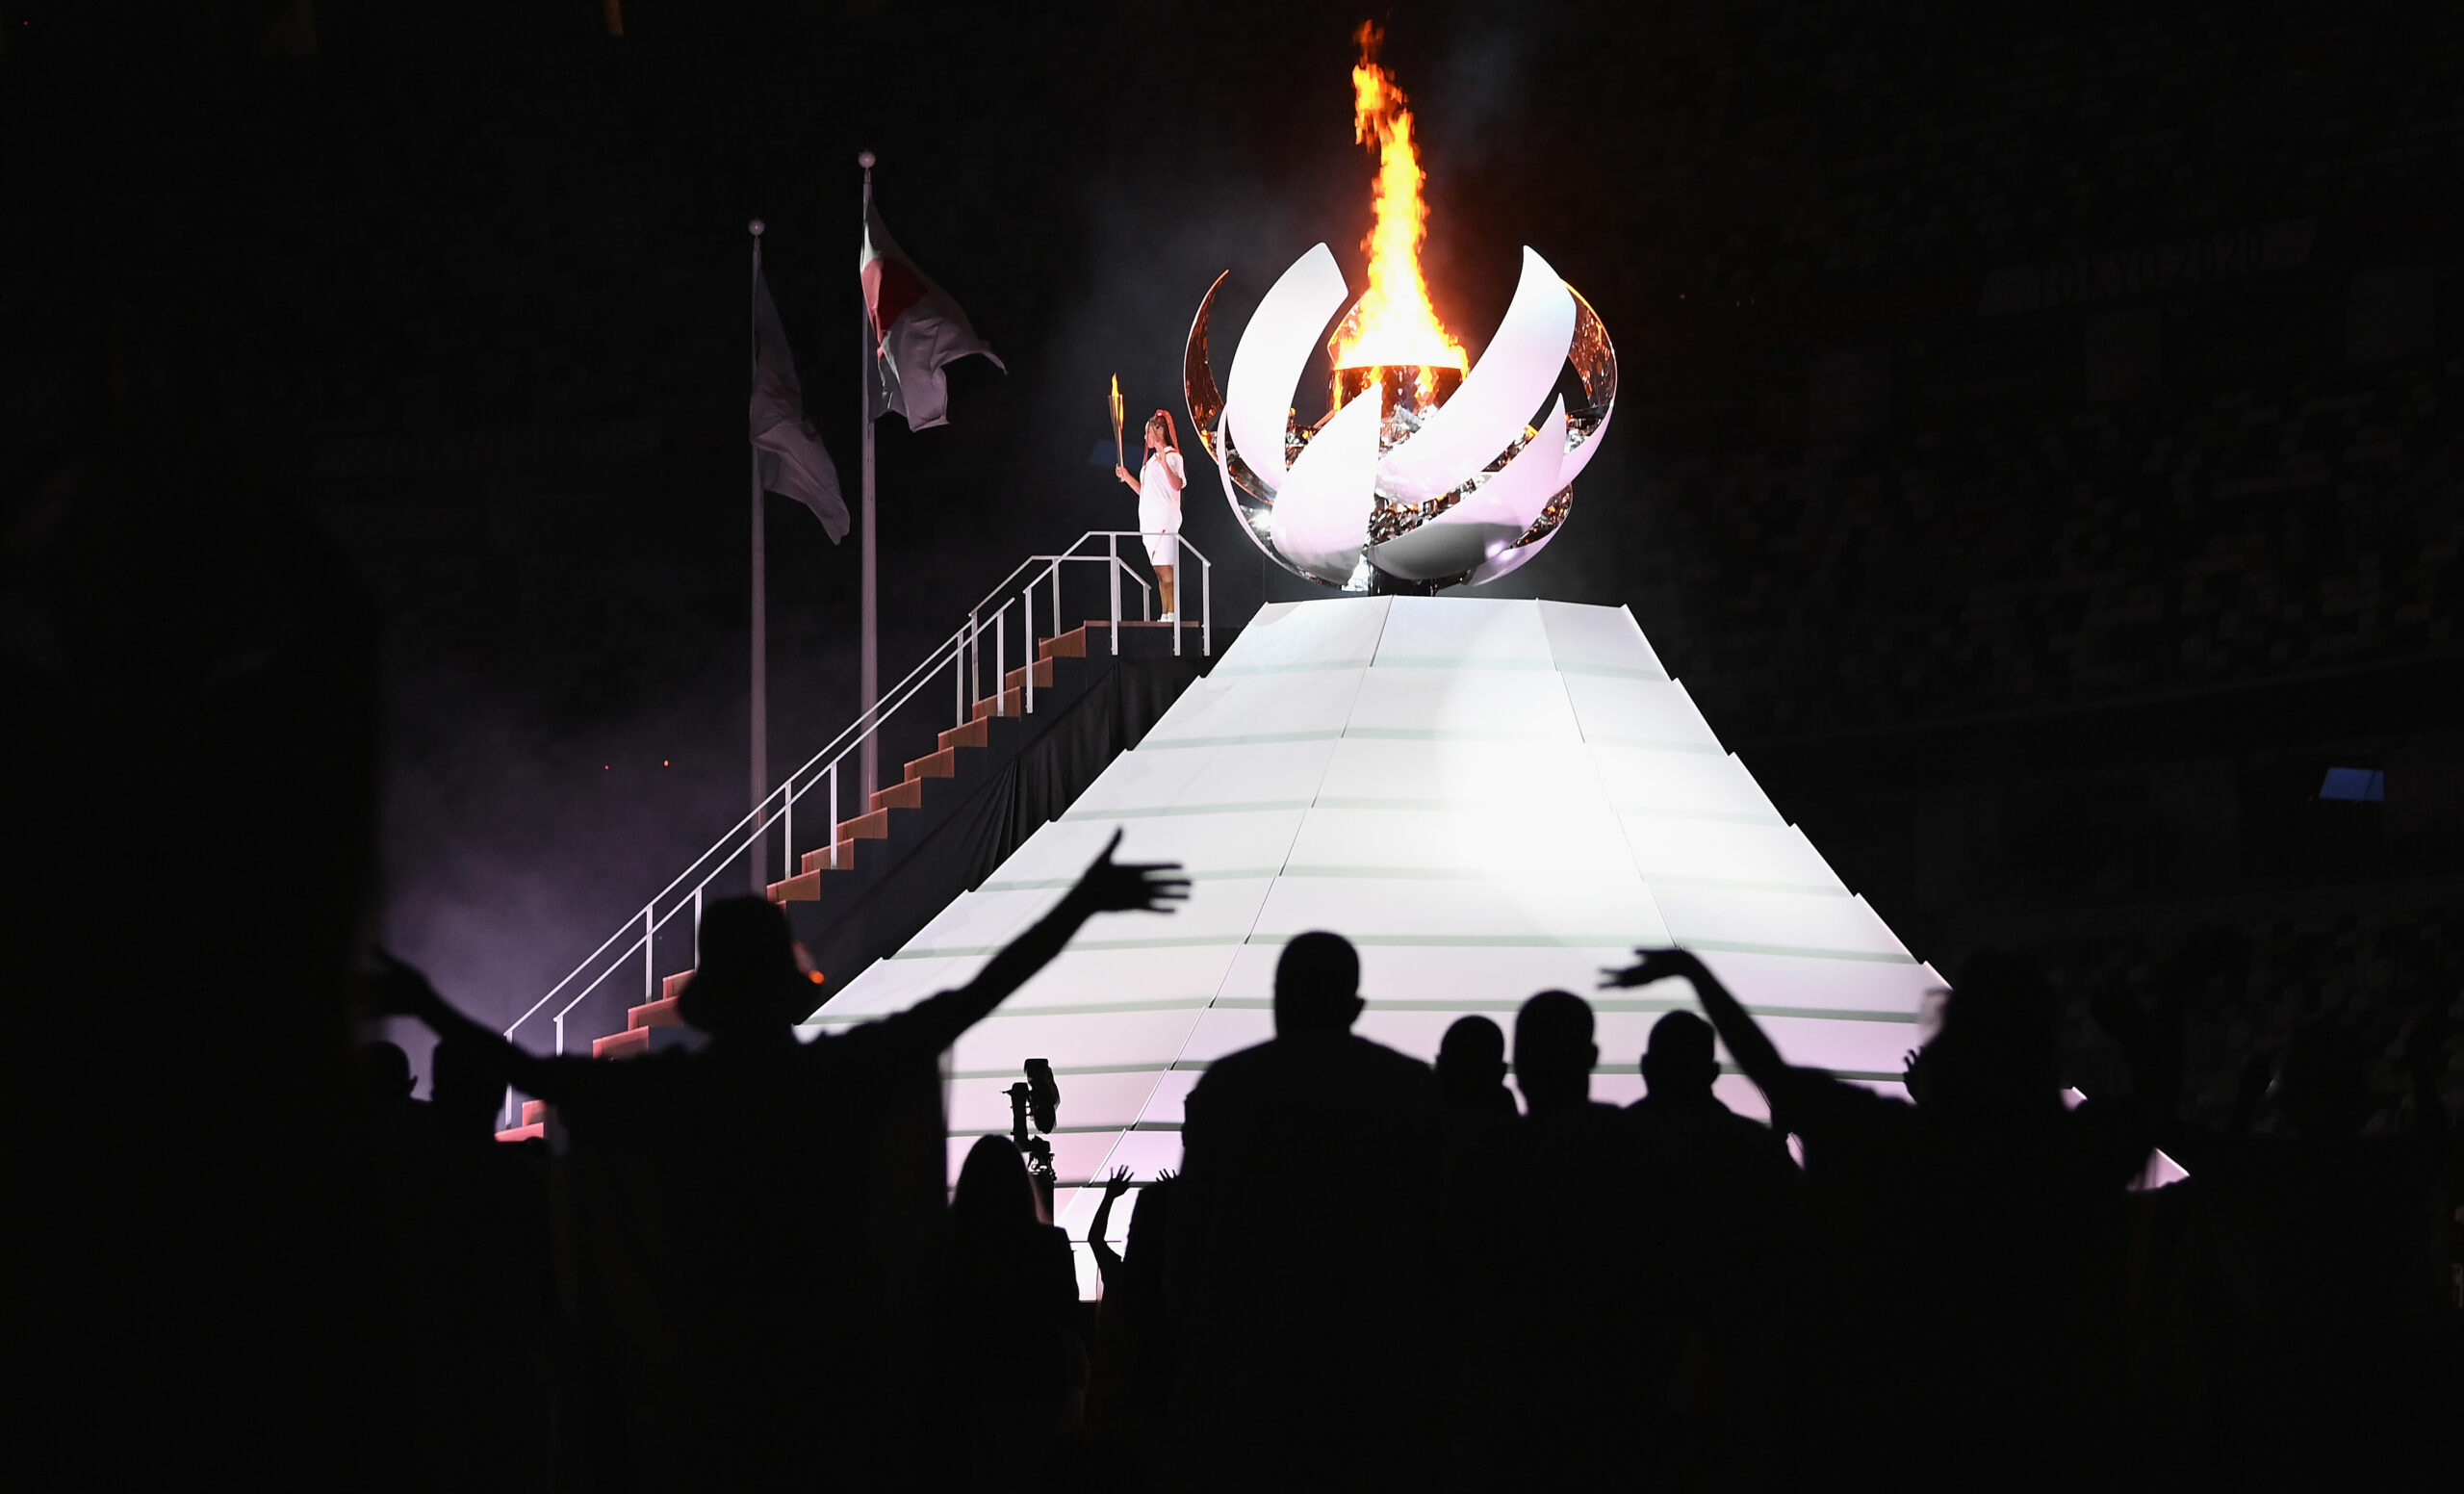 <i>Matthias Hangst/Getty Images</i><br/>Naomi Osaka of Team Japan lights the Olympic cauldron with the Olympic torch during the opening ceremony of the Tokyo 2020 Olympic Games on Friday